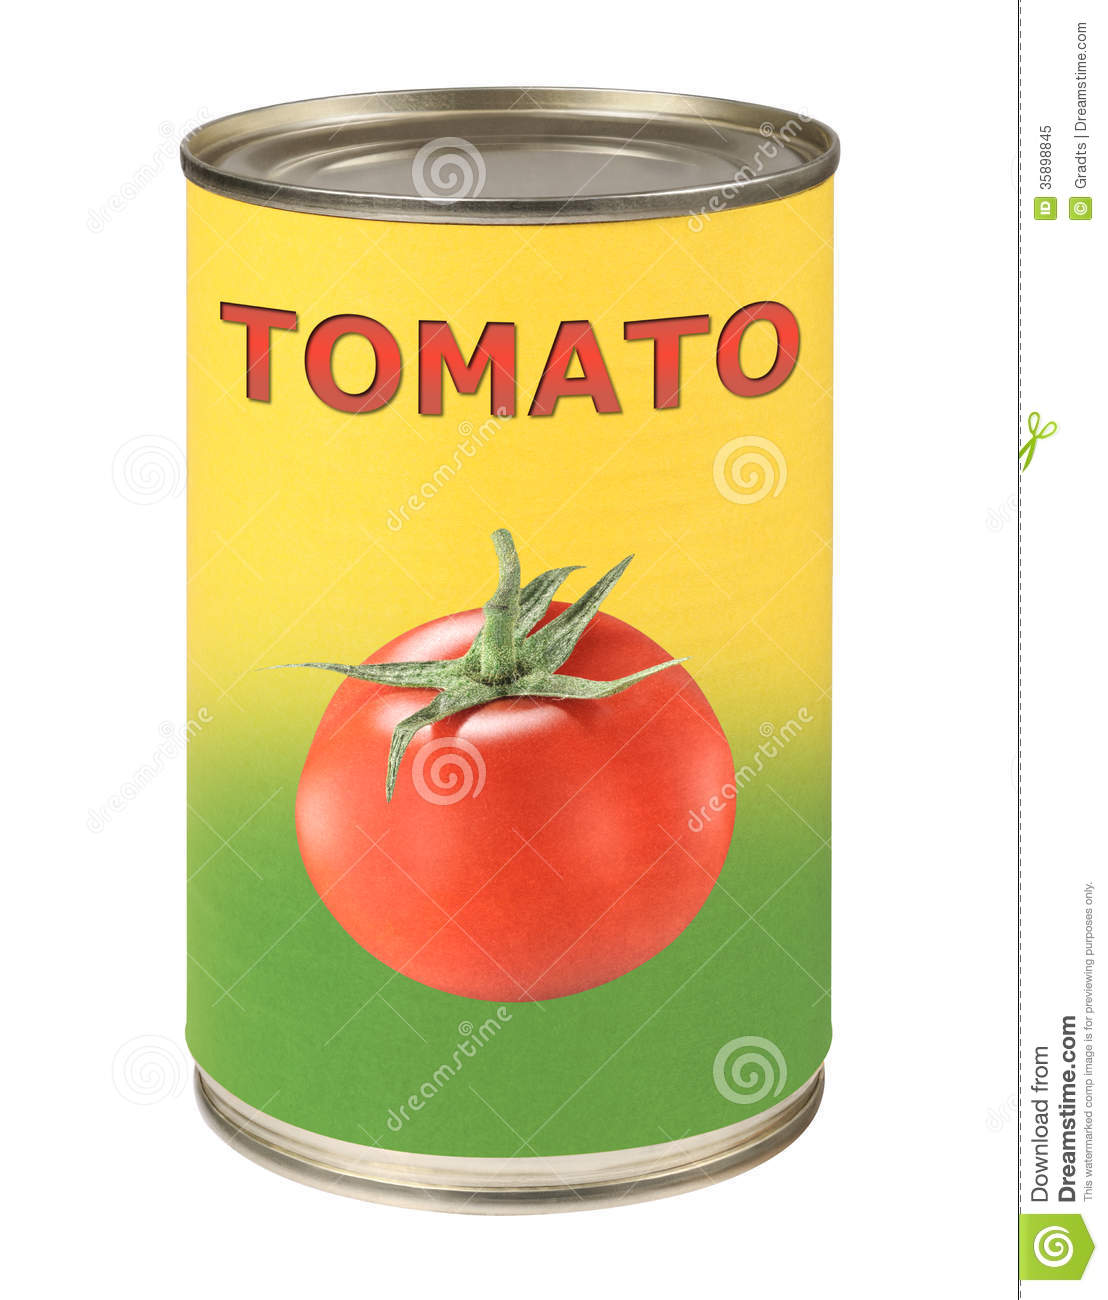 ... -food-clipart-tomato-food-tin-can-conserve-m43Dzx-clipart.jpg